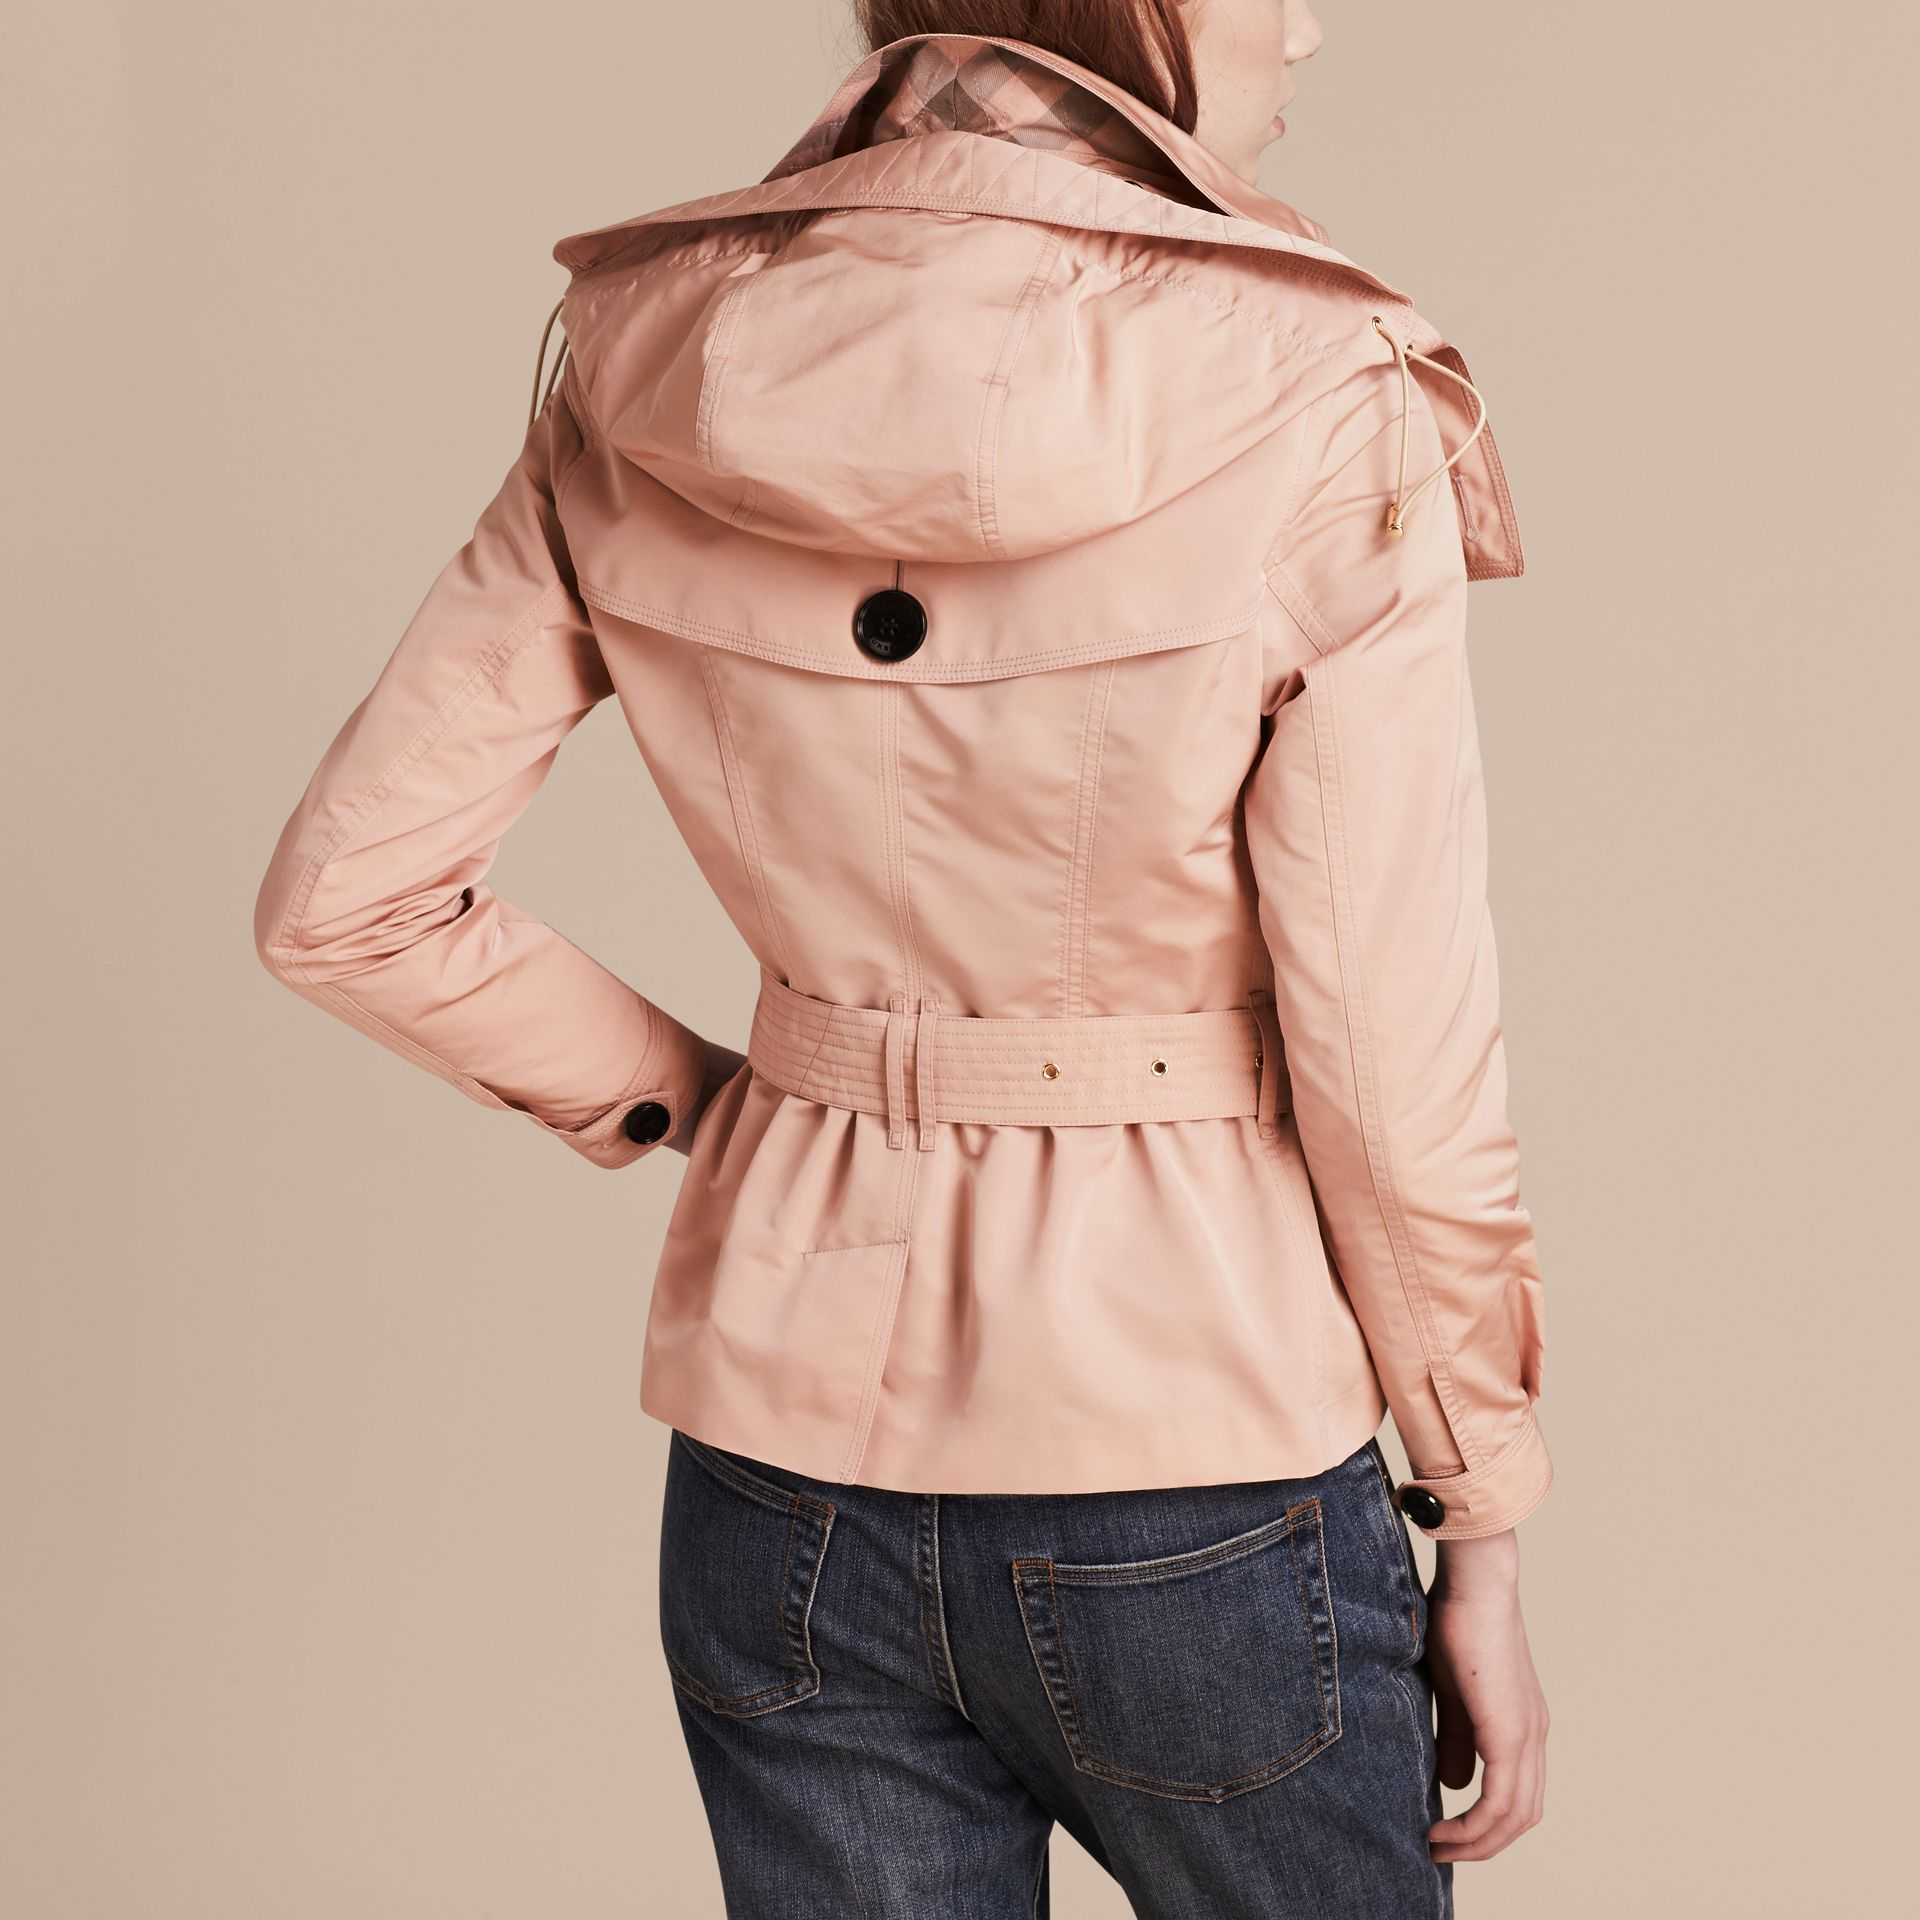 Chalk pink Showerproof Taffeta Trench Jacket with Detachable Hood Chalk Pink - gallery image 3